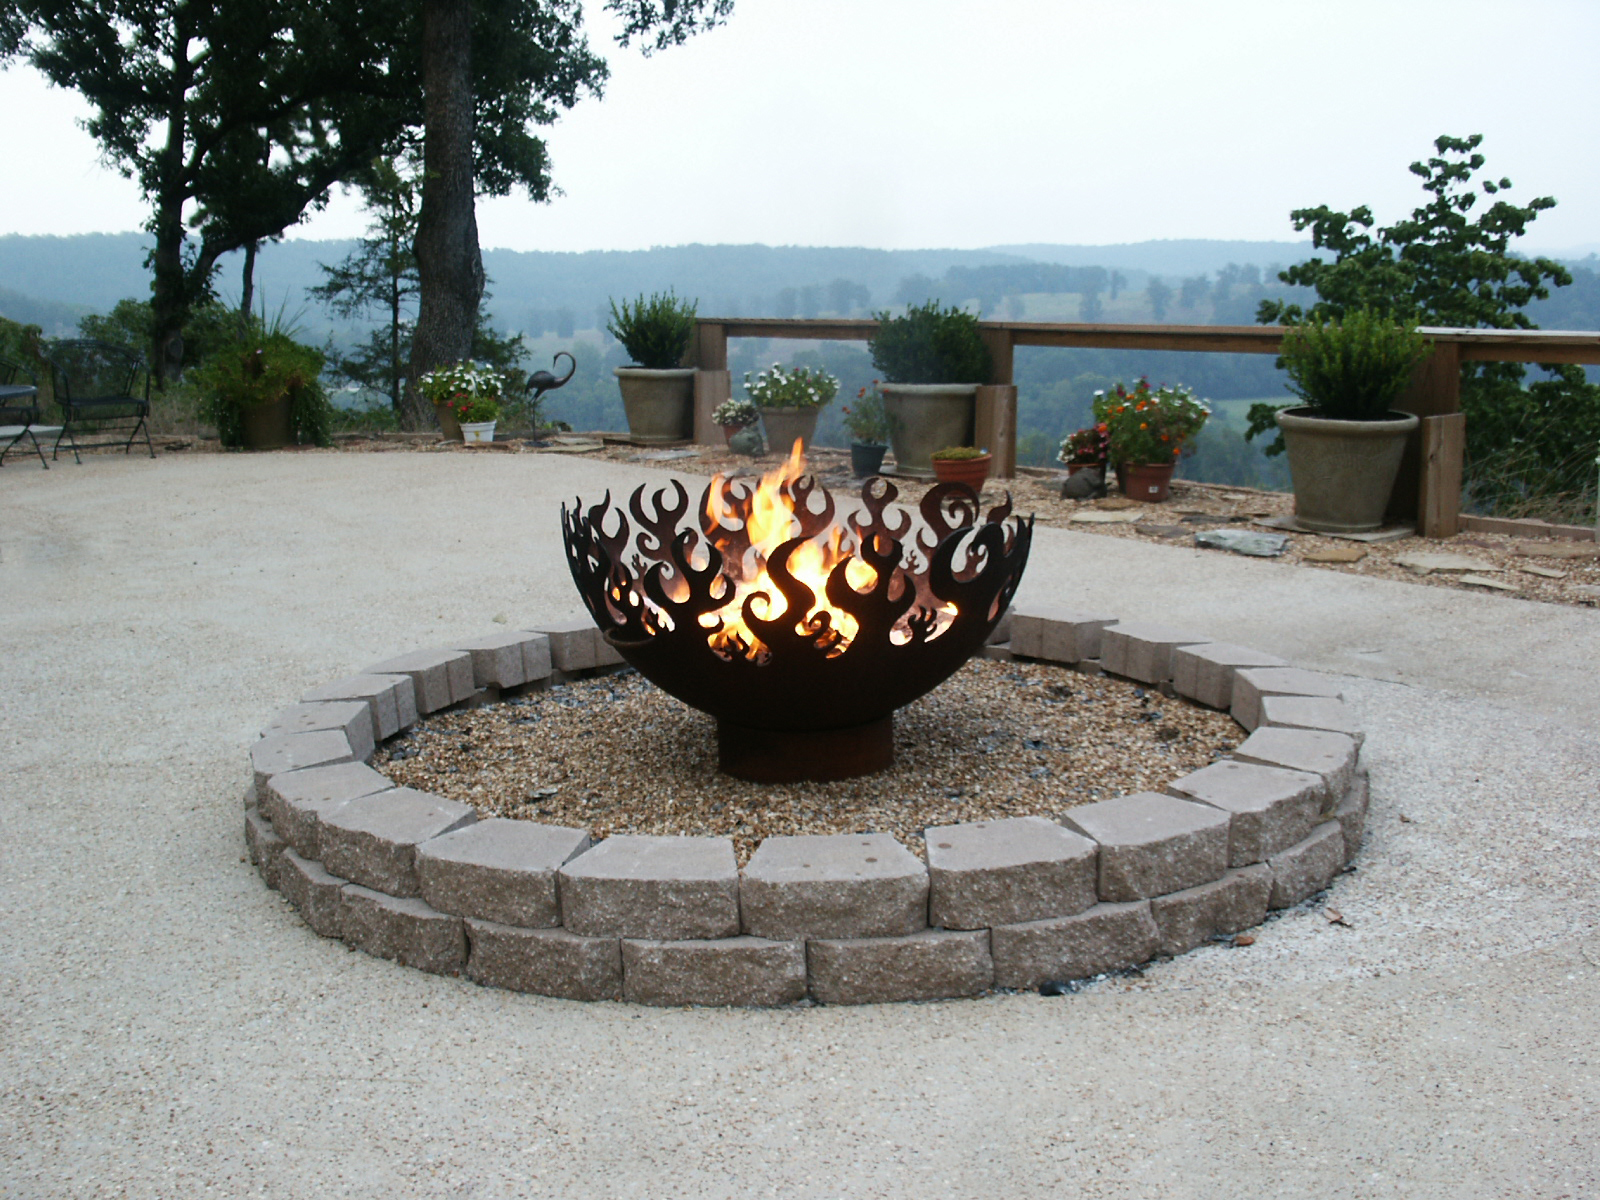 Great Bowl O' Fire 41 Inch Sculptural Firebowl™ overlooking river in Norfolk, AR